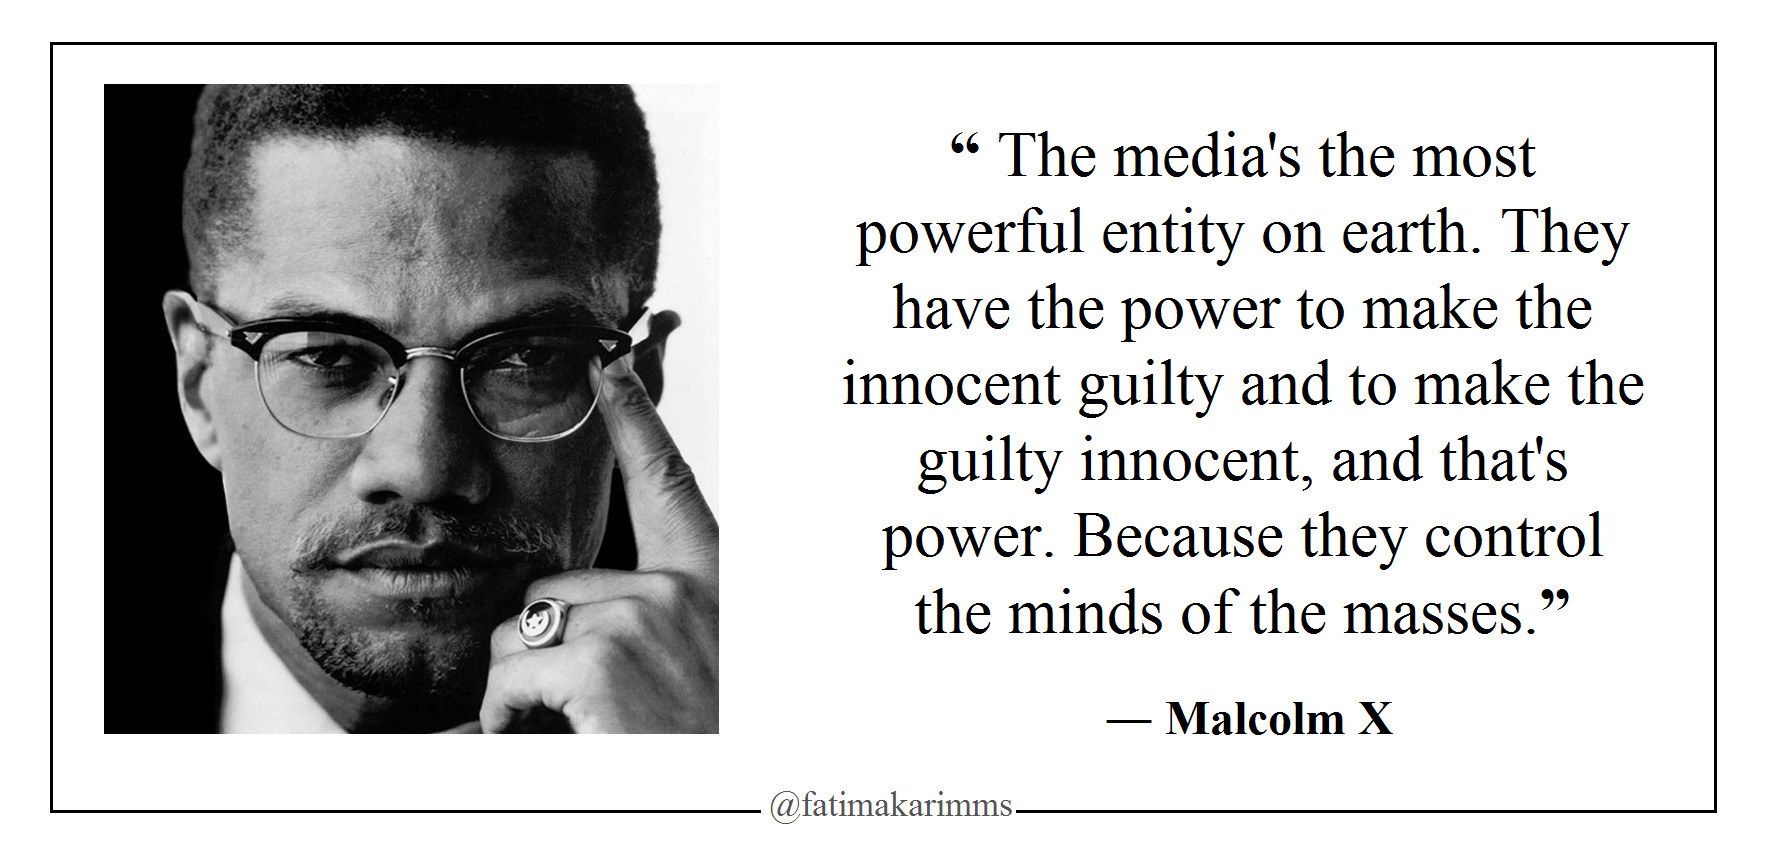 """ The media's the most powerful entity on earth. They have the power to make the innocent guilty and to make the guilty innocent.. ― Malcolm X [1770*862] [OC]"